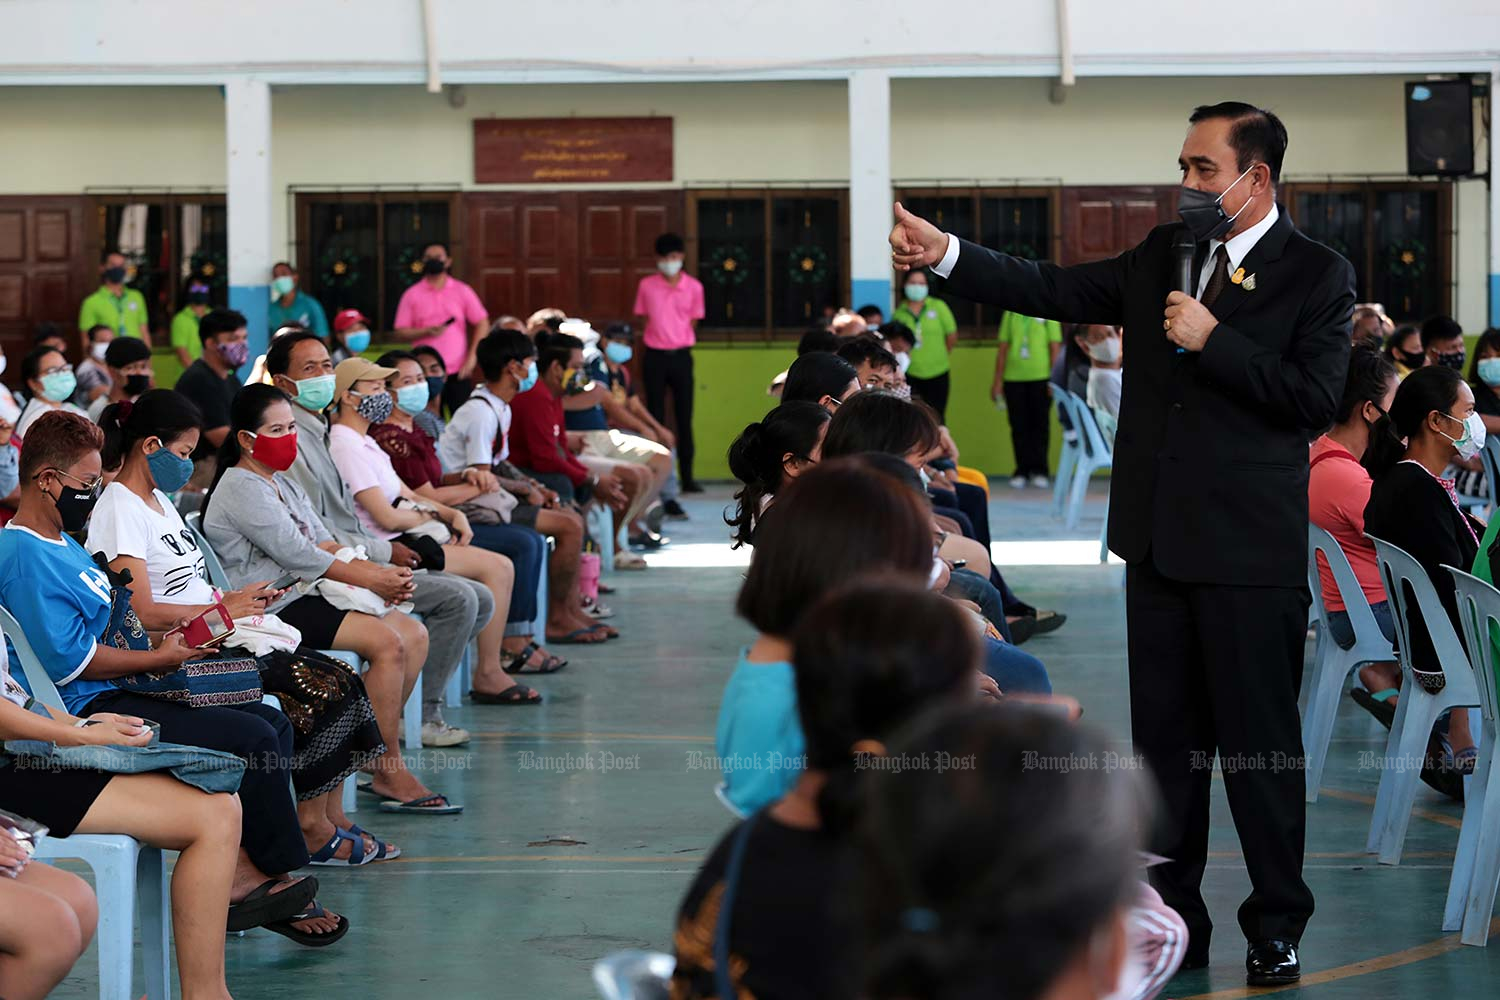 Prime Minister Prayut Chan-o-cha speaks to people at a community centre for distributing food and necessities to people affected by the Covid-19 pandemic at Wat Rakhang Khositaram in Bangkok. The centre was initiated by His Holiness the Supreme Patriarch. (Photo by Chanat Katanyu)